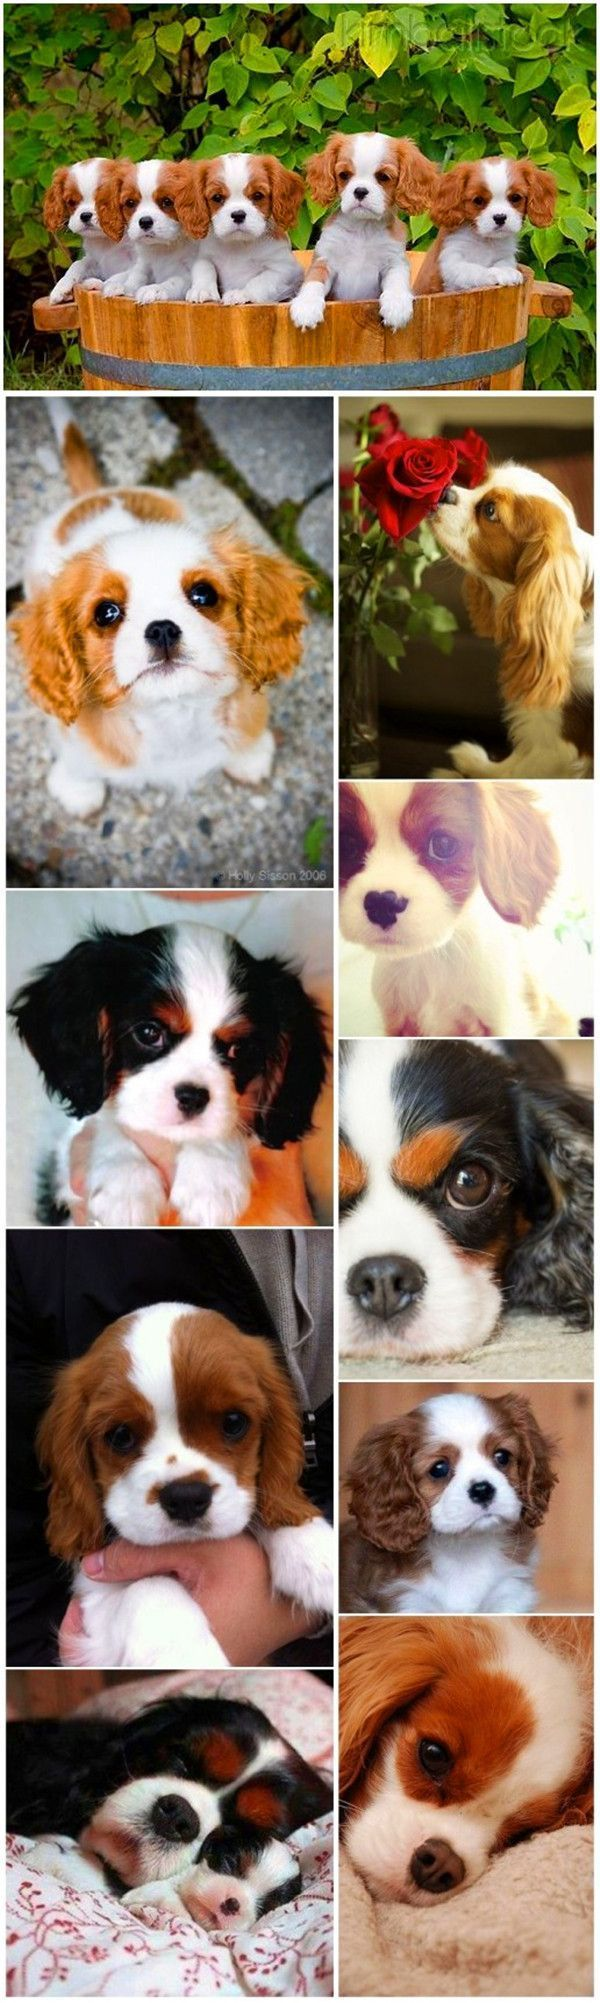 Cute small dog breeds 2 Cavalier King Charles Spaniel with puppies #dogbreeds